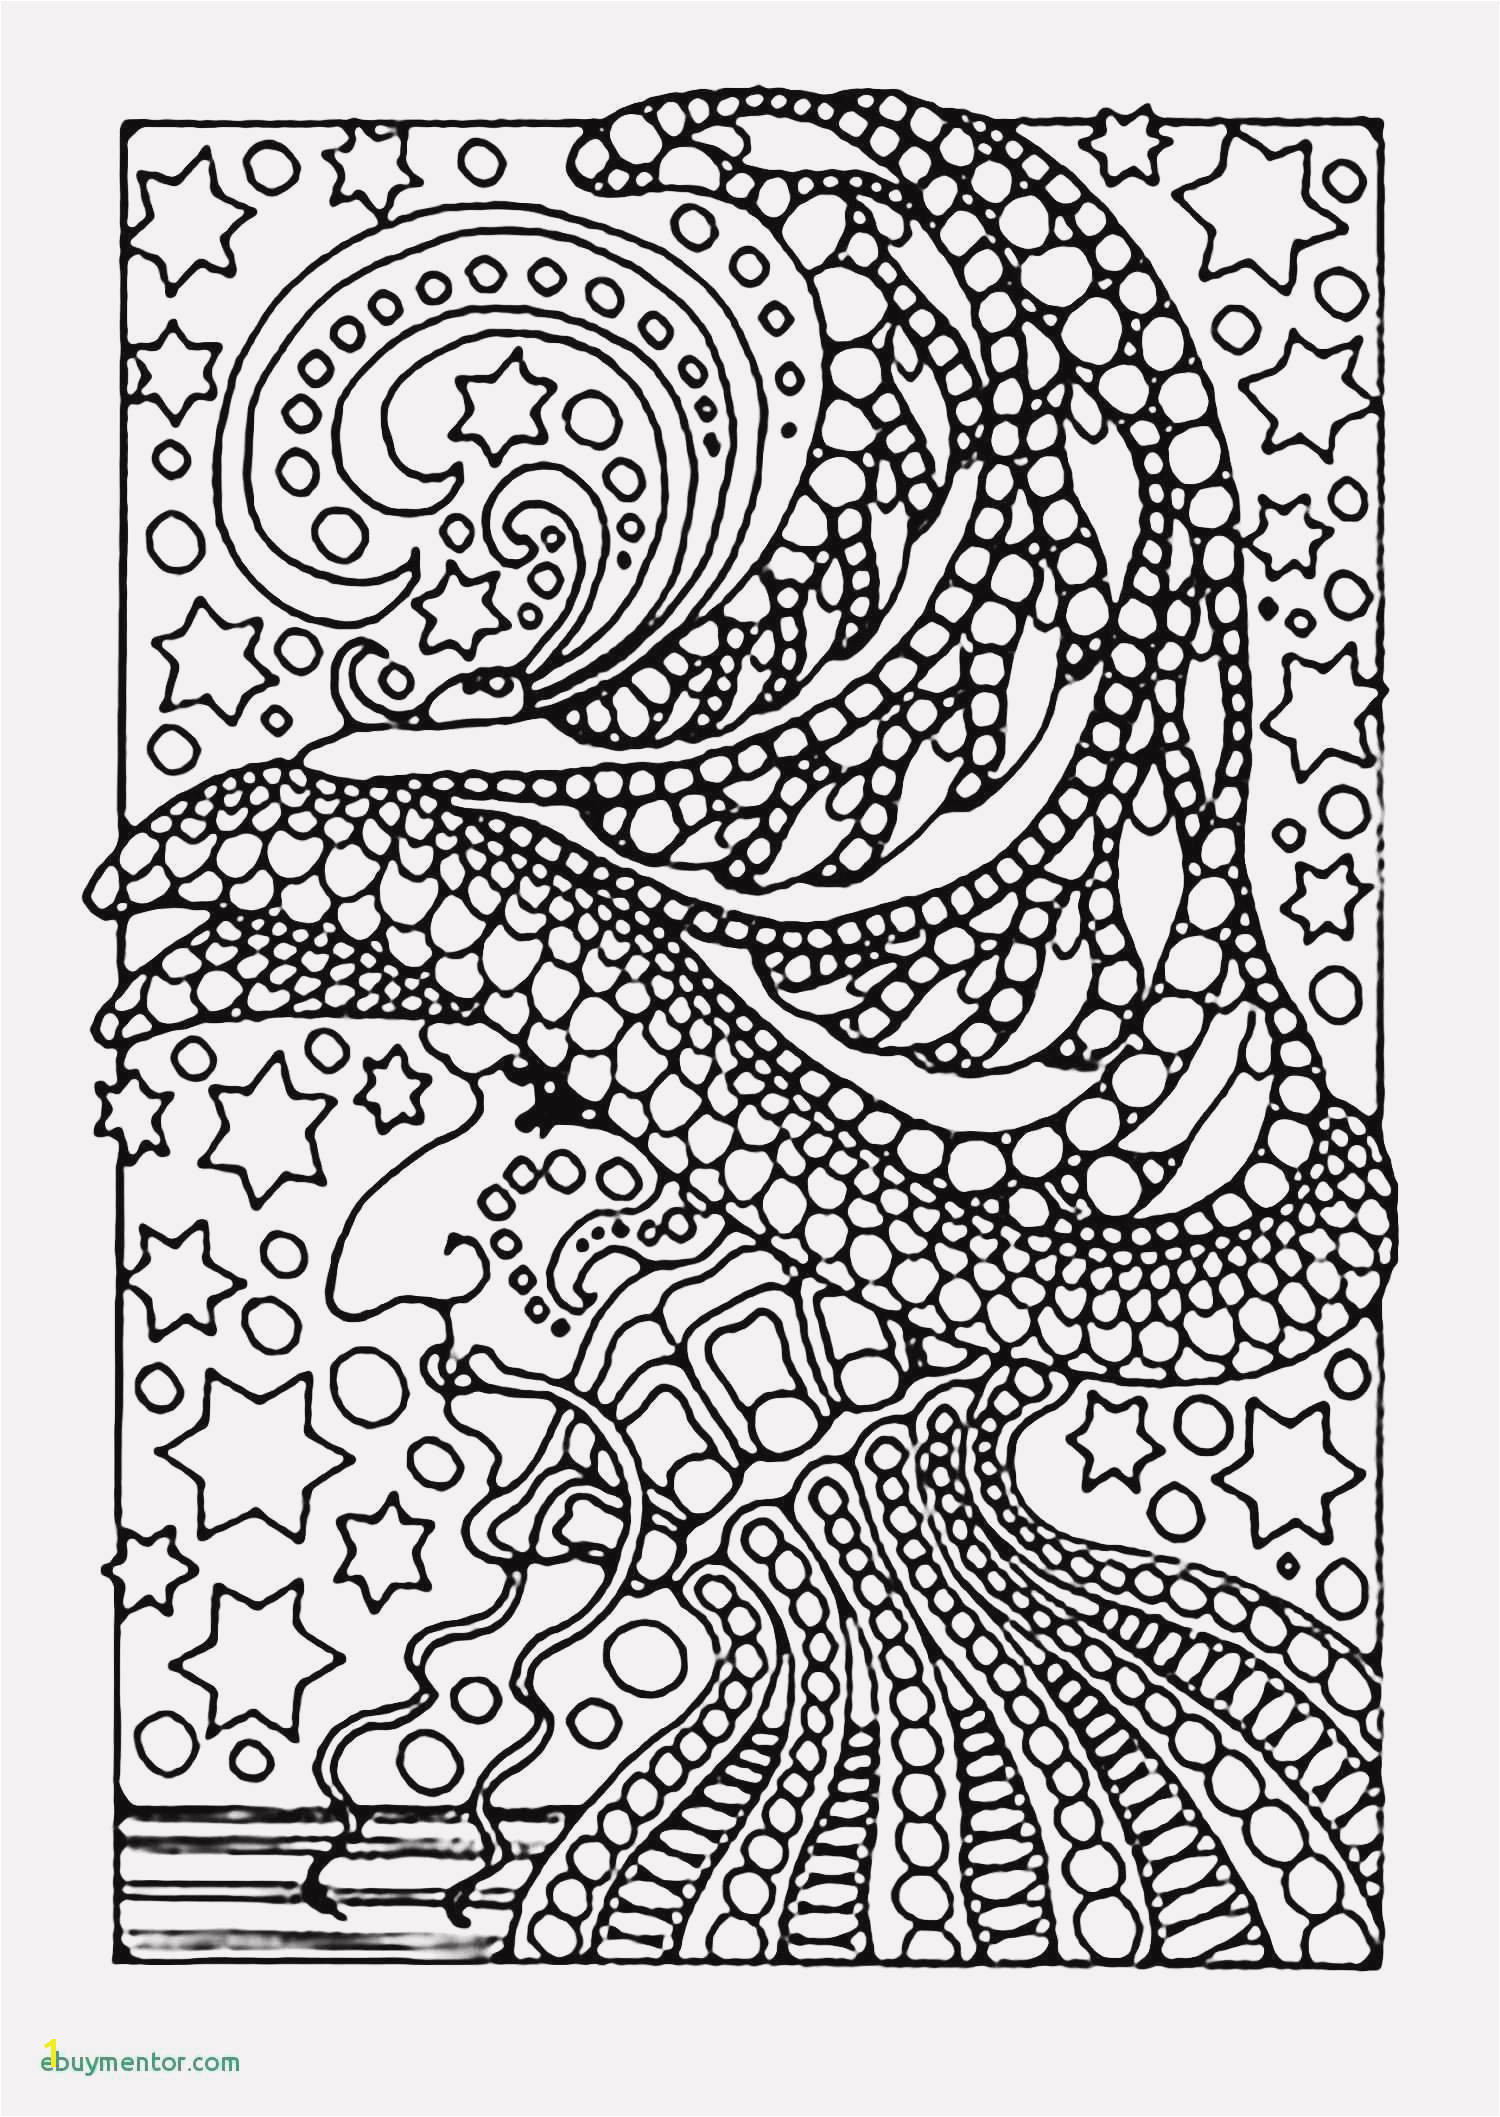 Printable Christmas ornaments Coloring Pages Cool Coloring Page Unique Witch Coloring Pages New Crayola Pages 0d